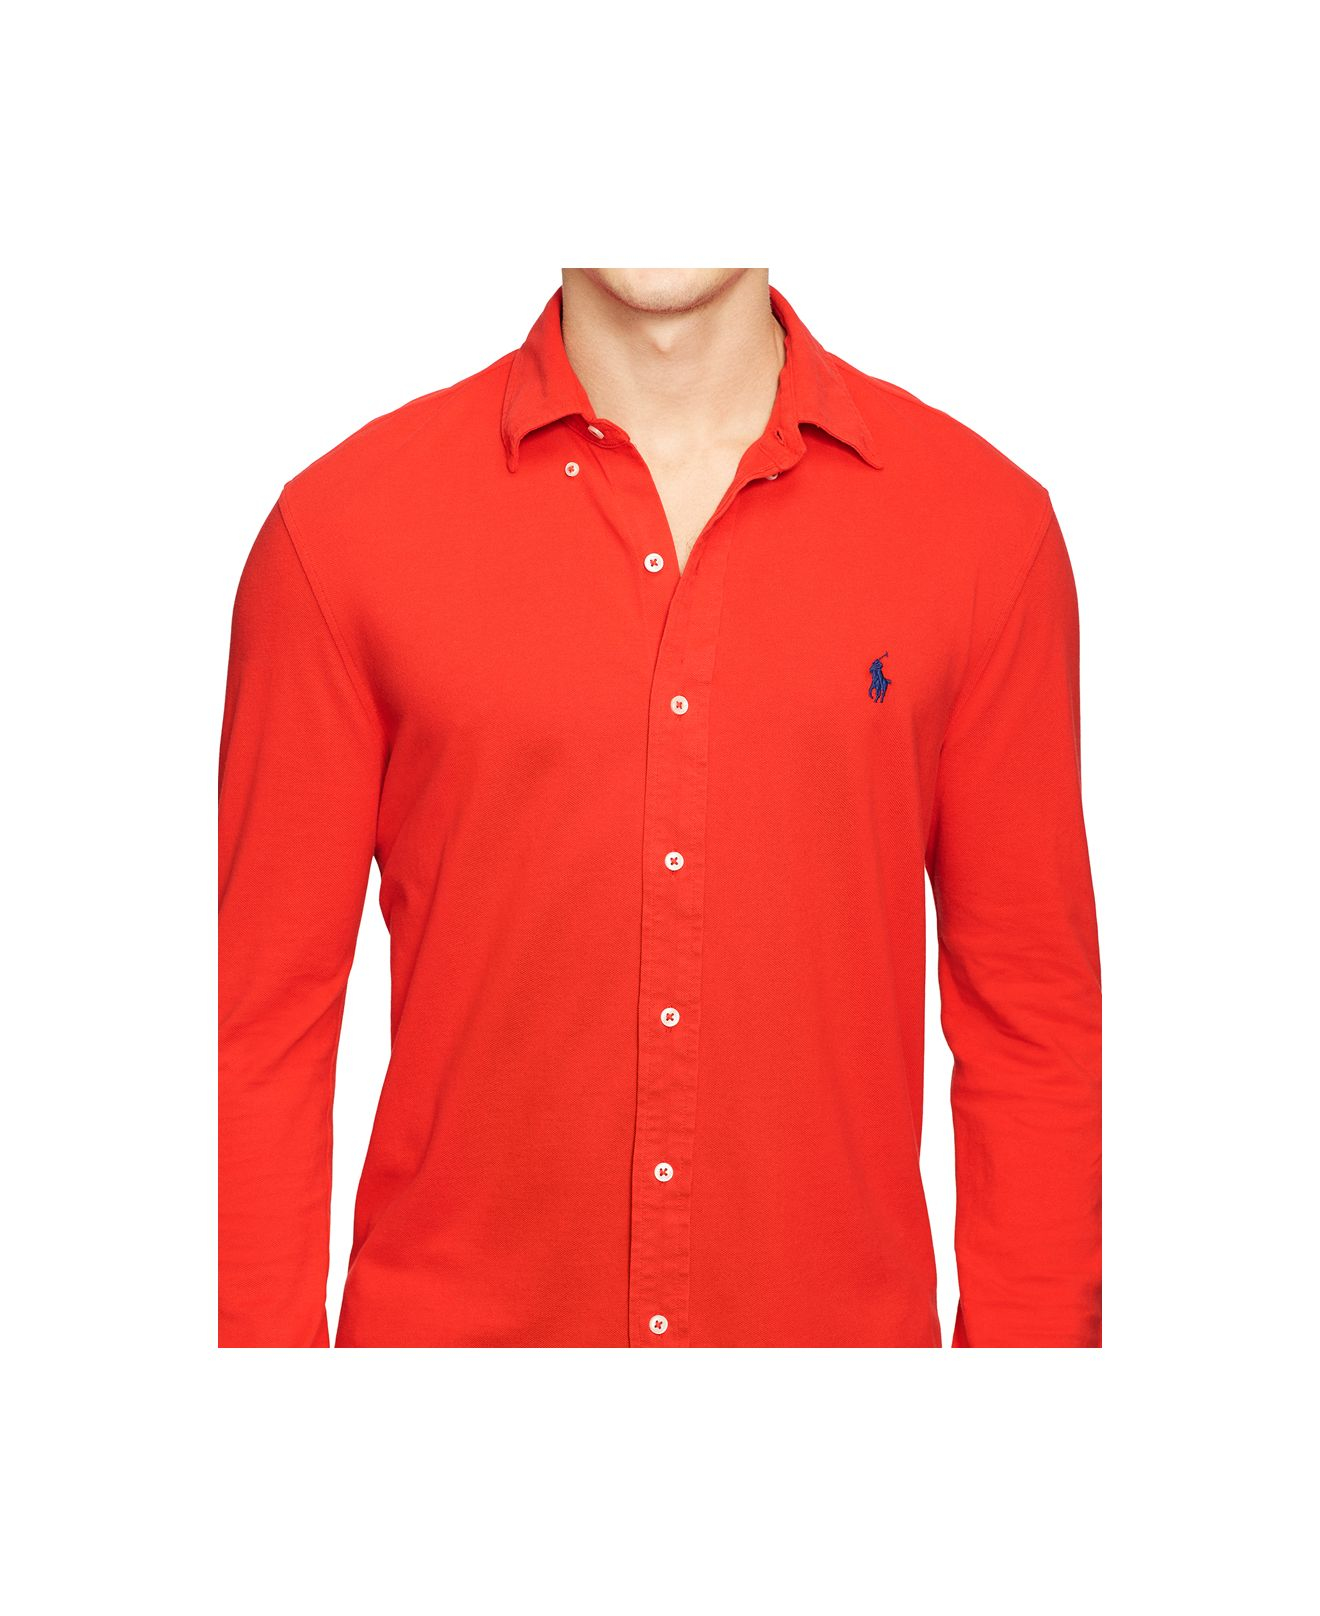 Red Long Sleeve Button Down Polo Shirt Bcd Tofu House